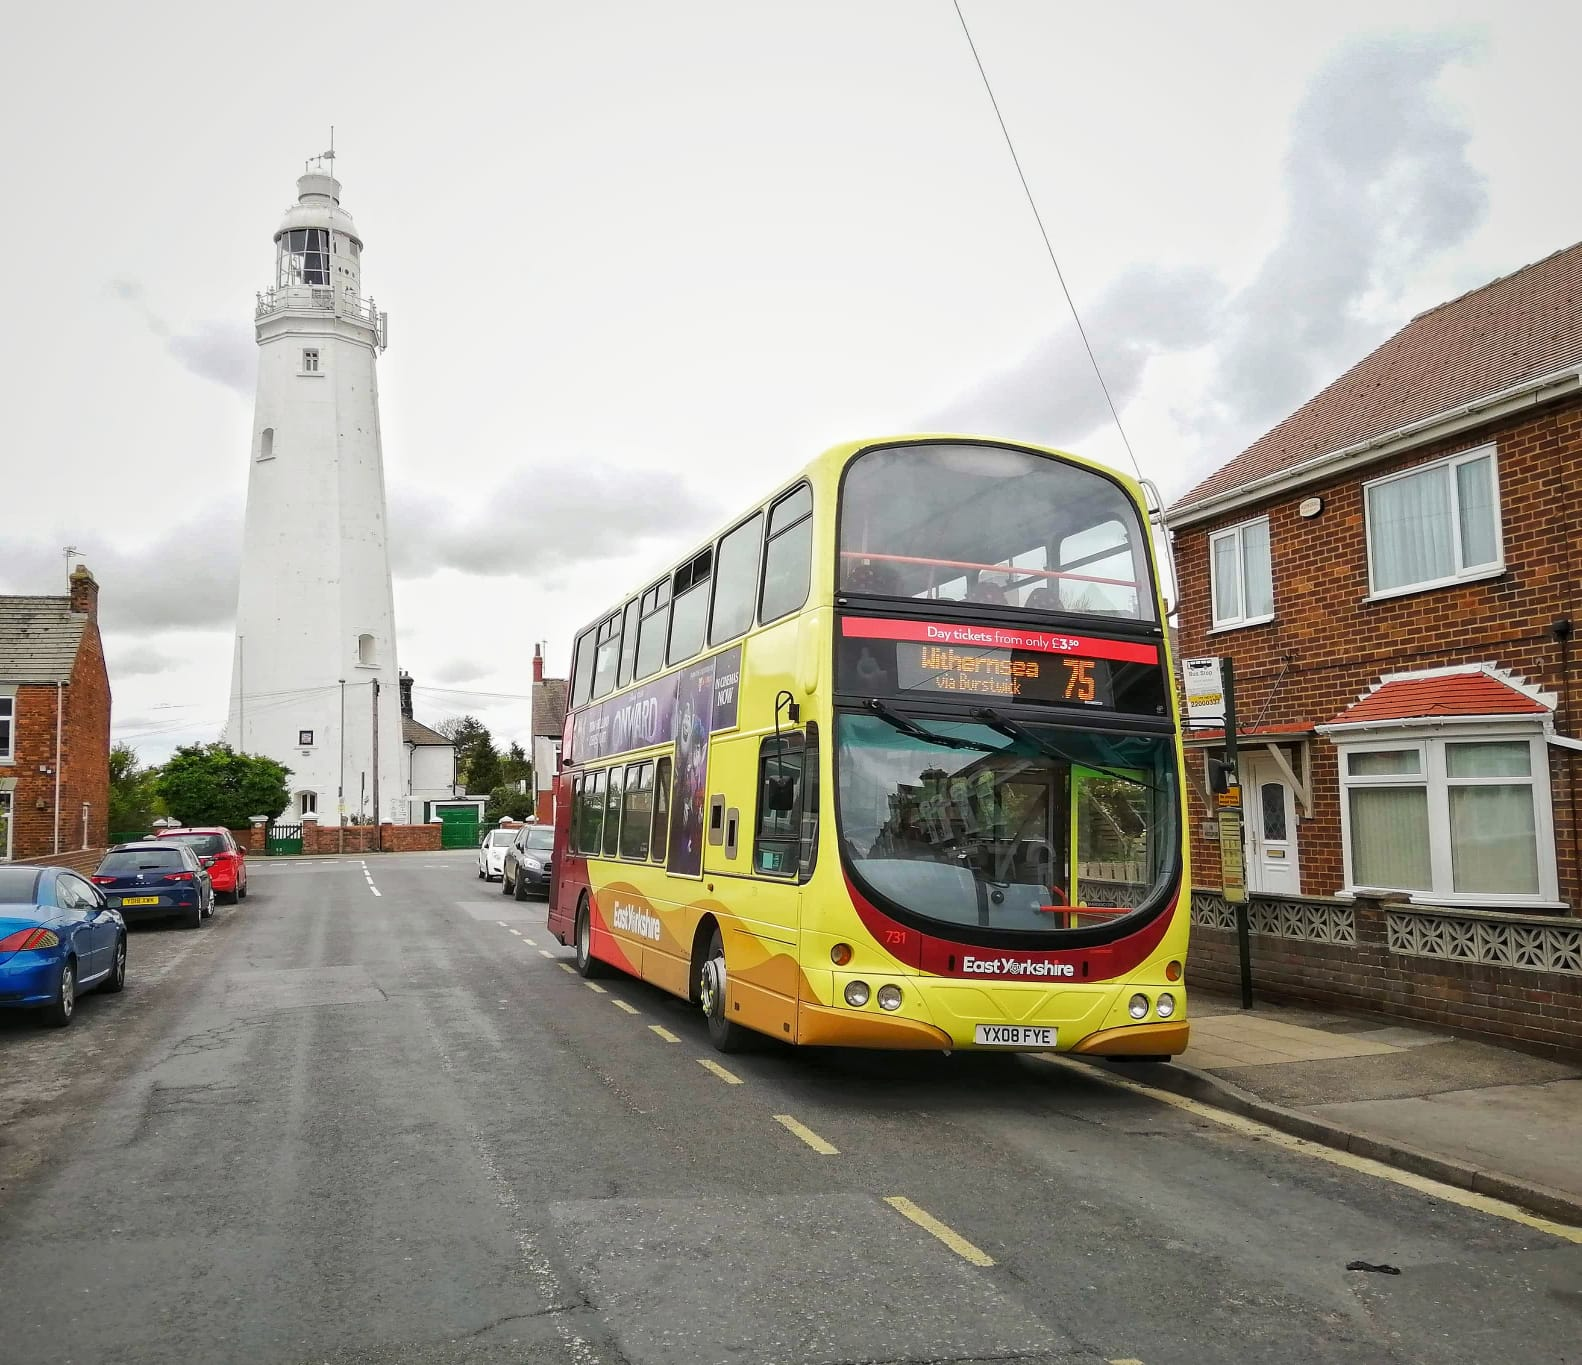 A double decker East Yorkshire bus in front of Withernsea Lighthouse